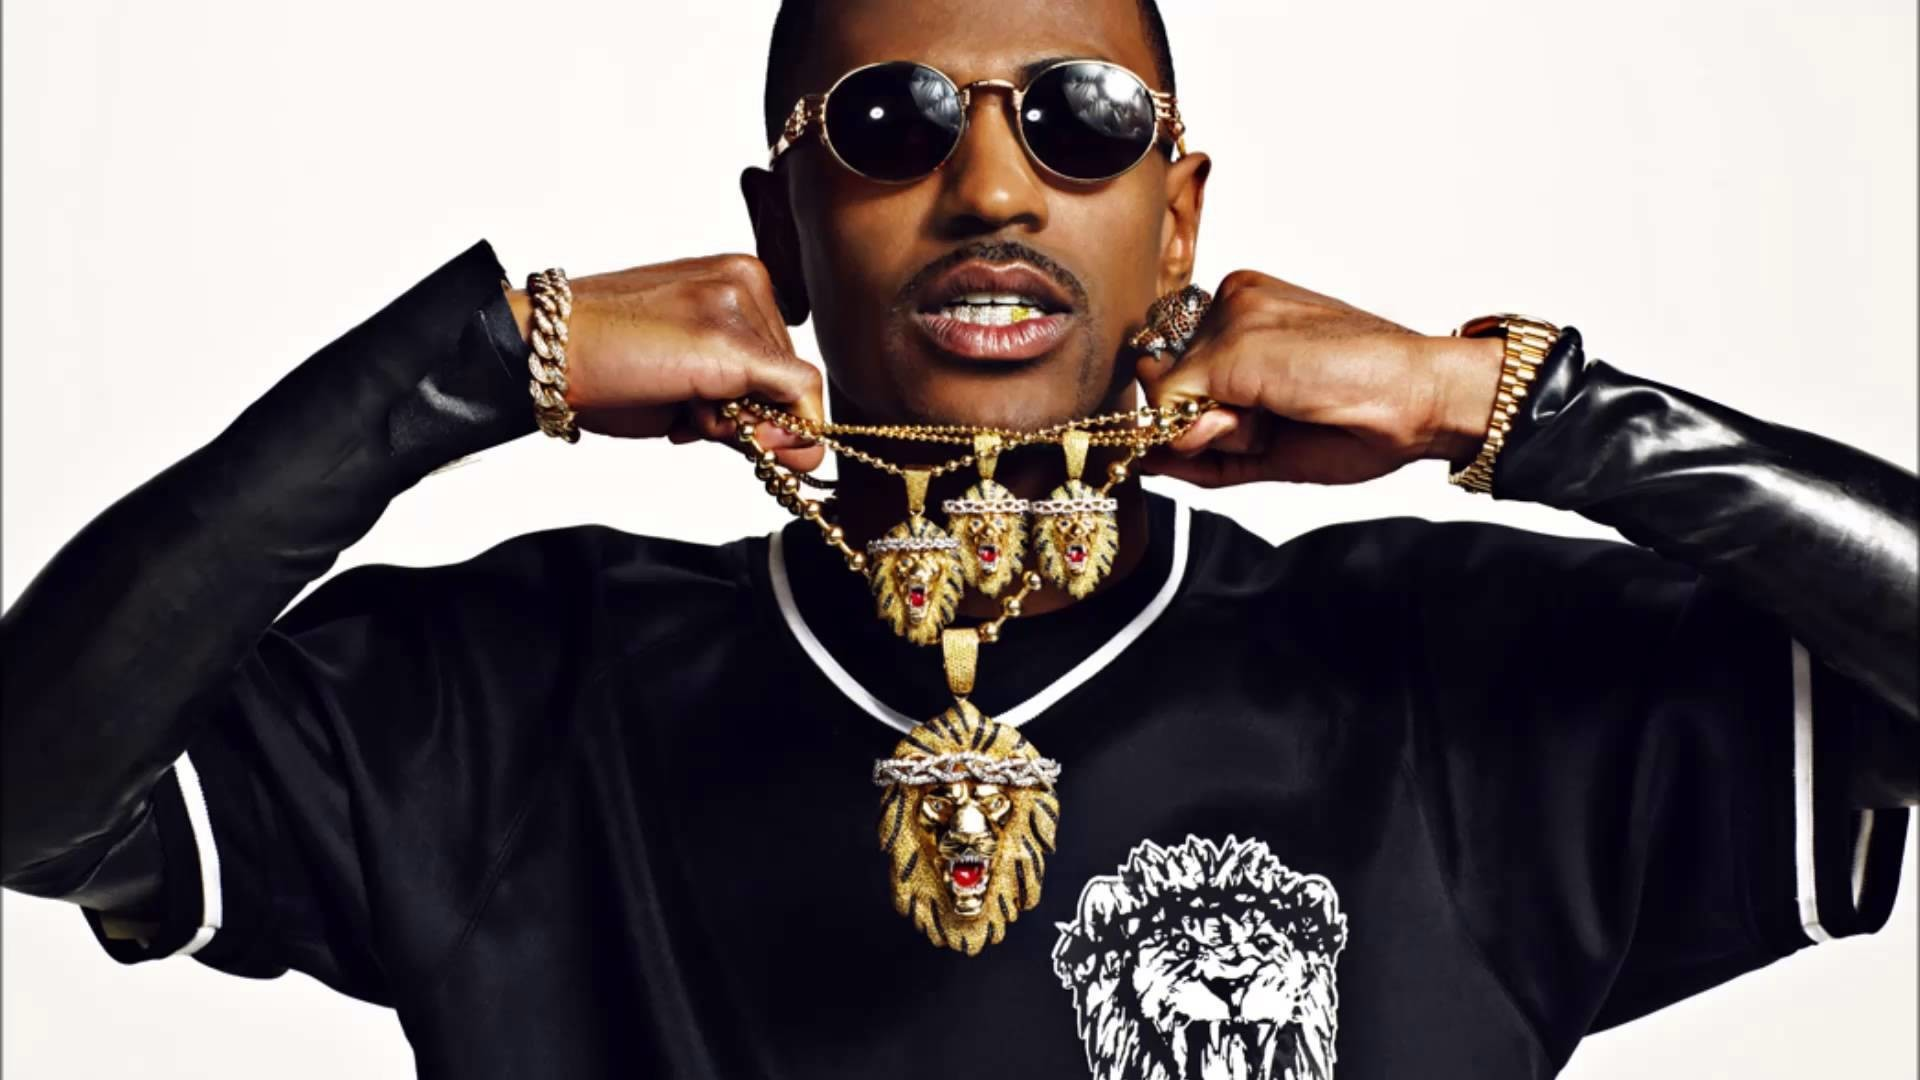 1920x1080  Big Sean Full Hd